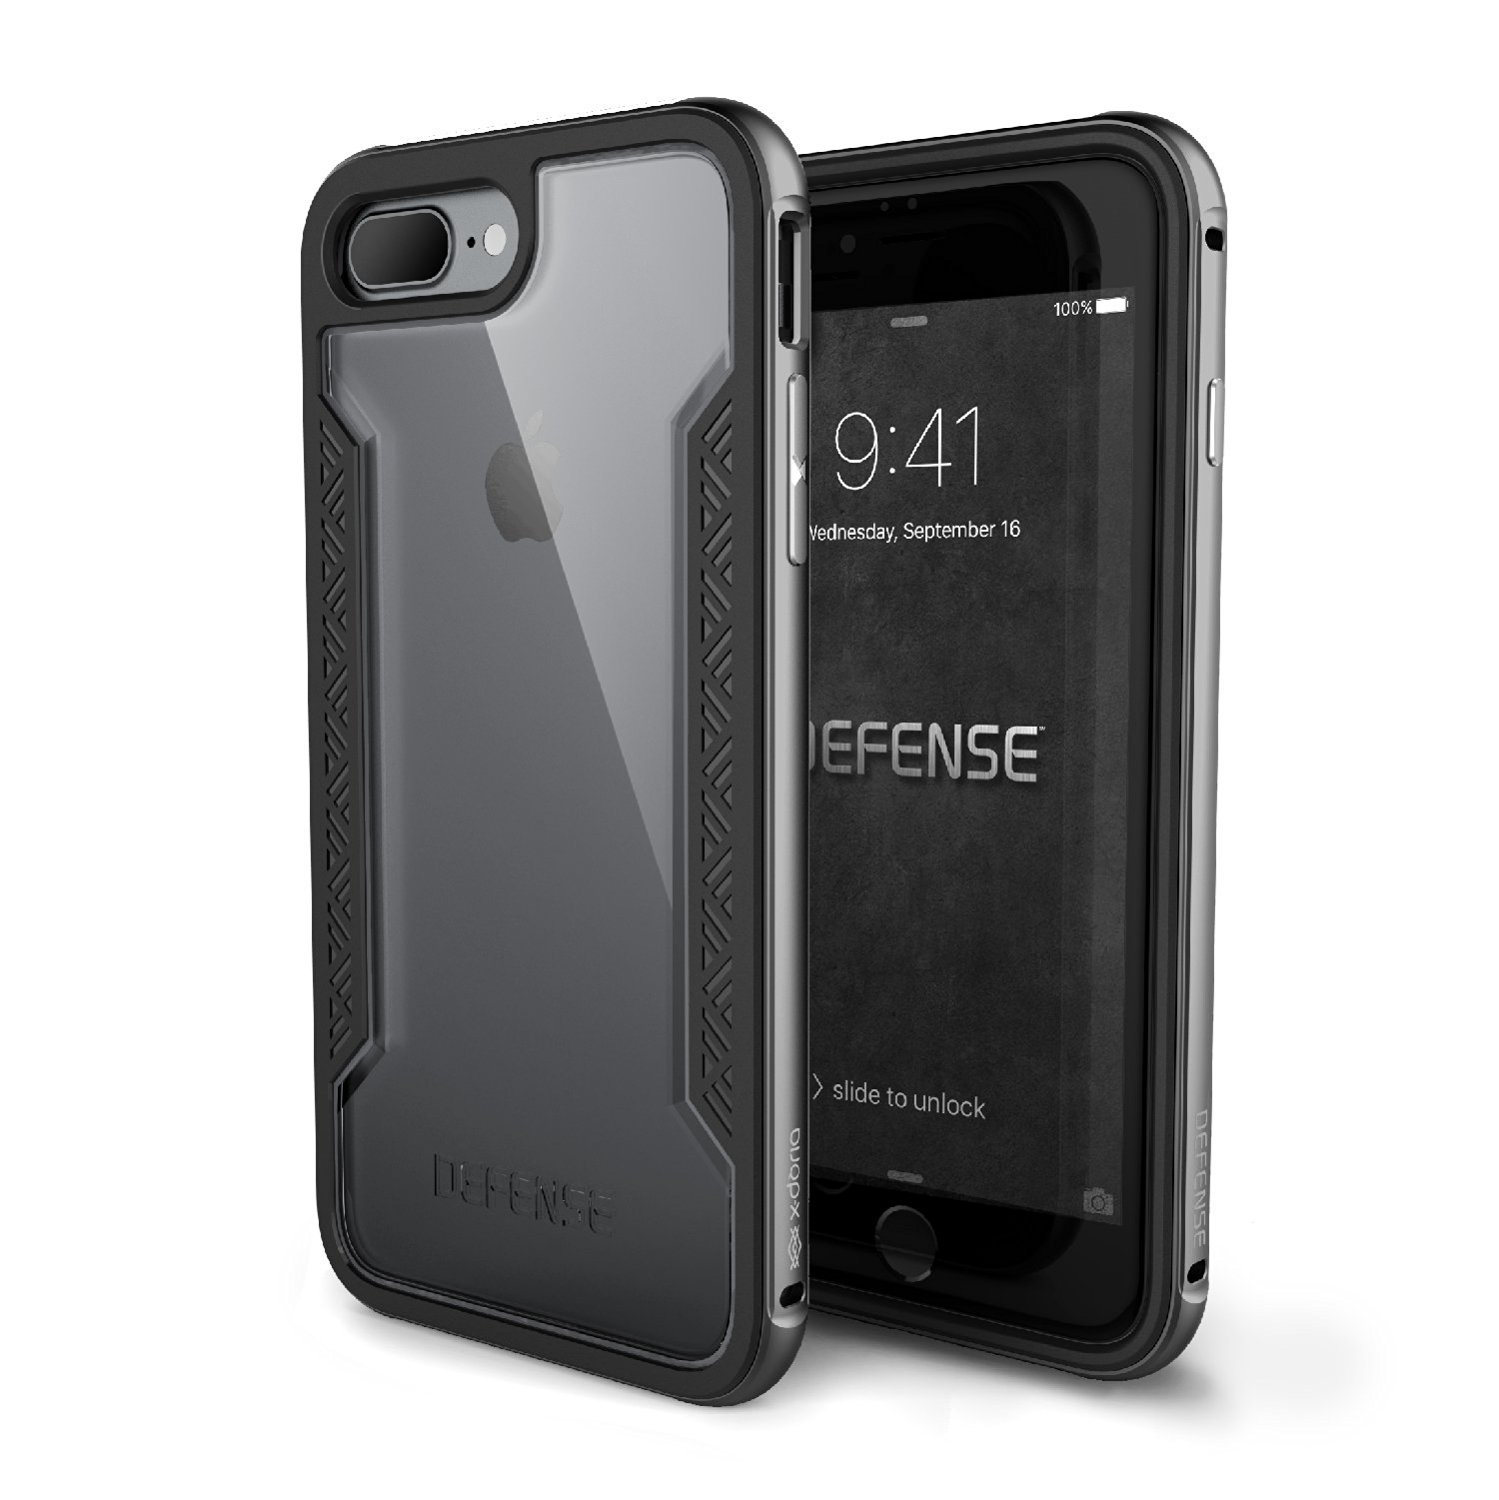 X Doria Defense Shield iPhone 7 Plus Case